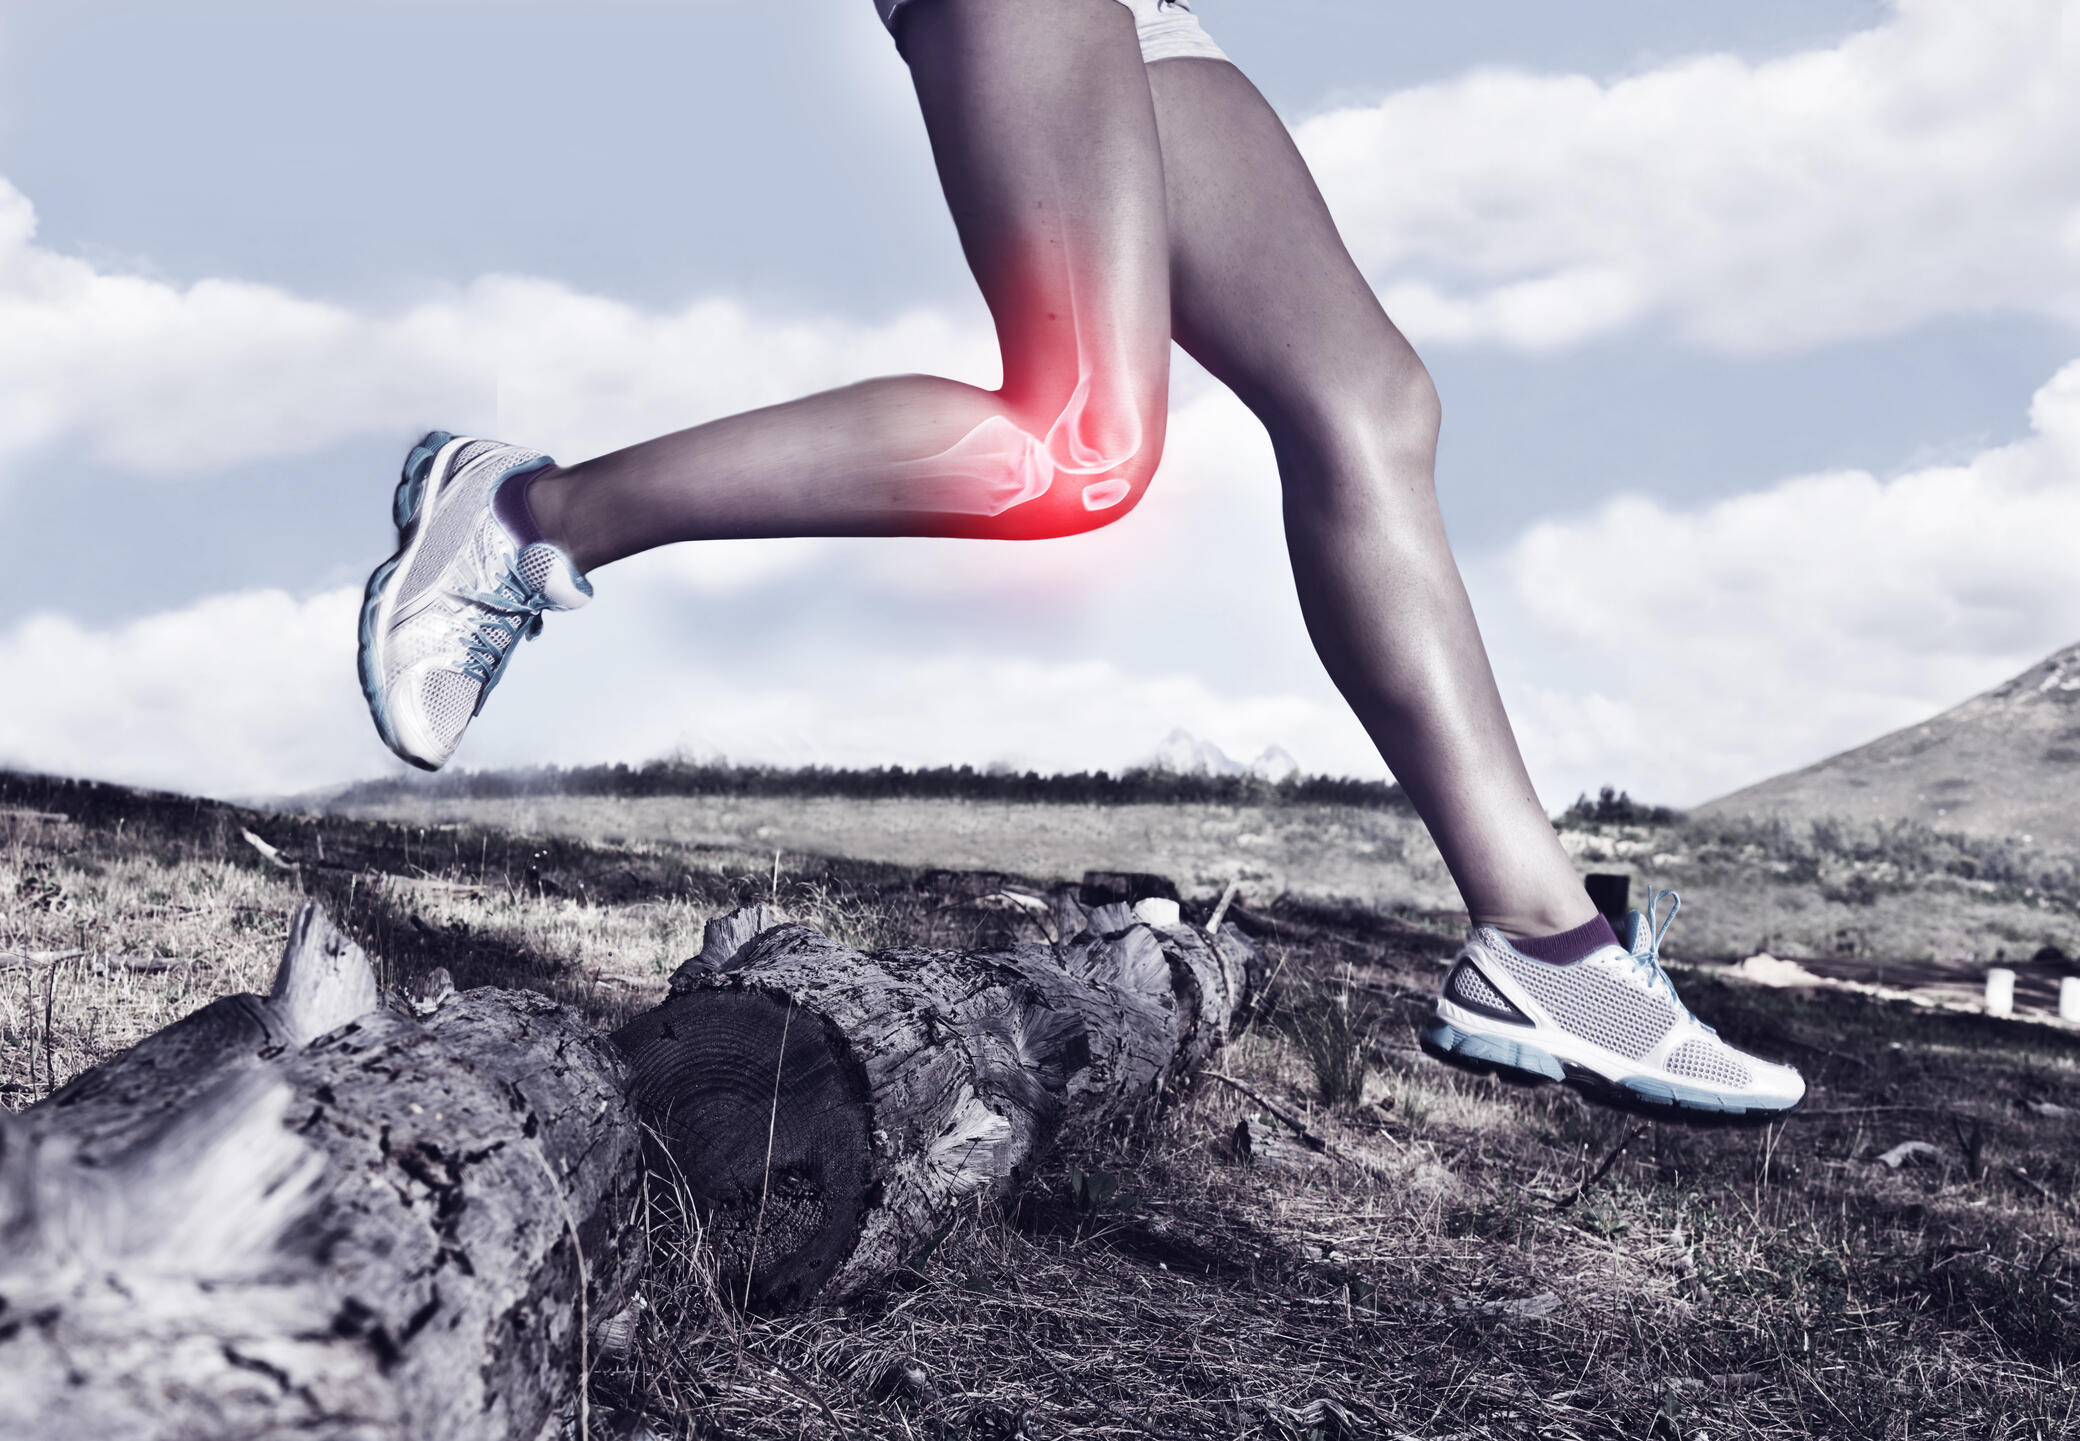 Image of a woman running depicts knee pain